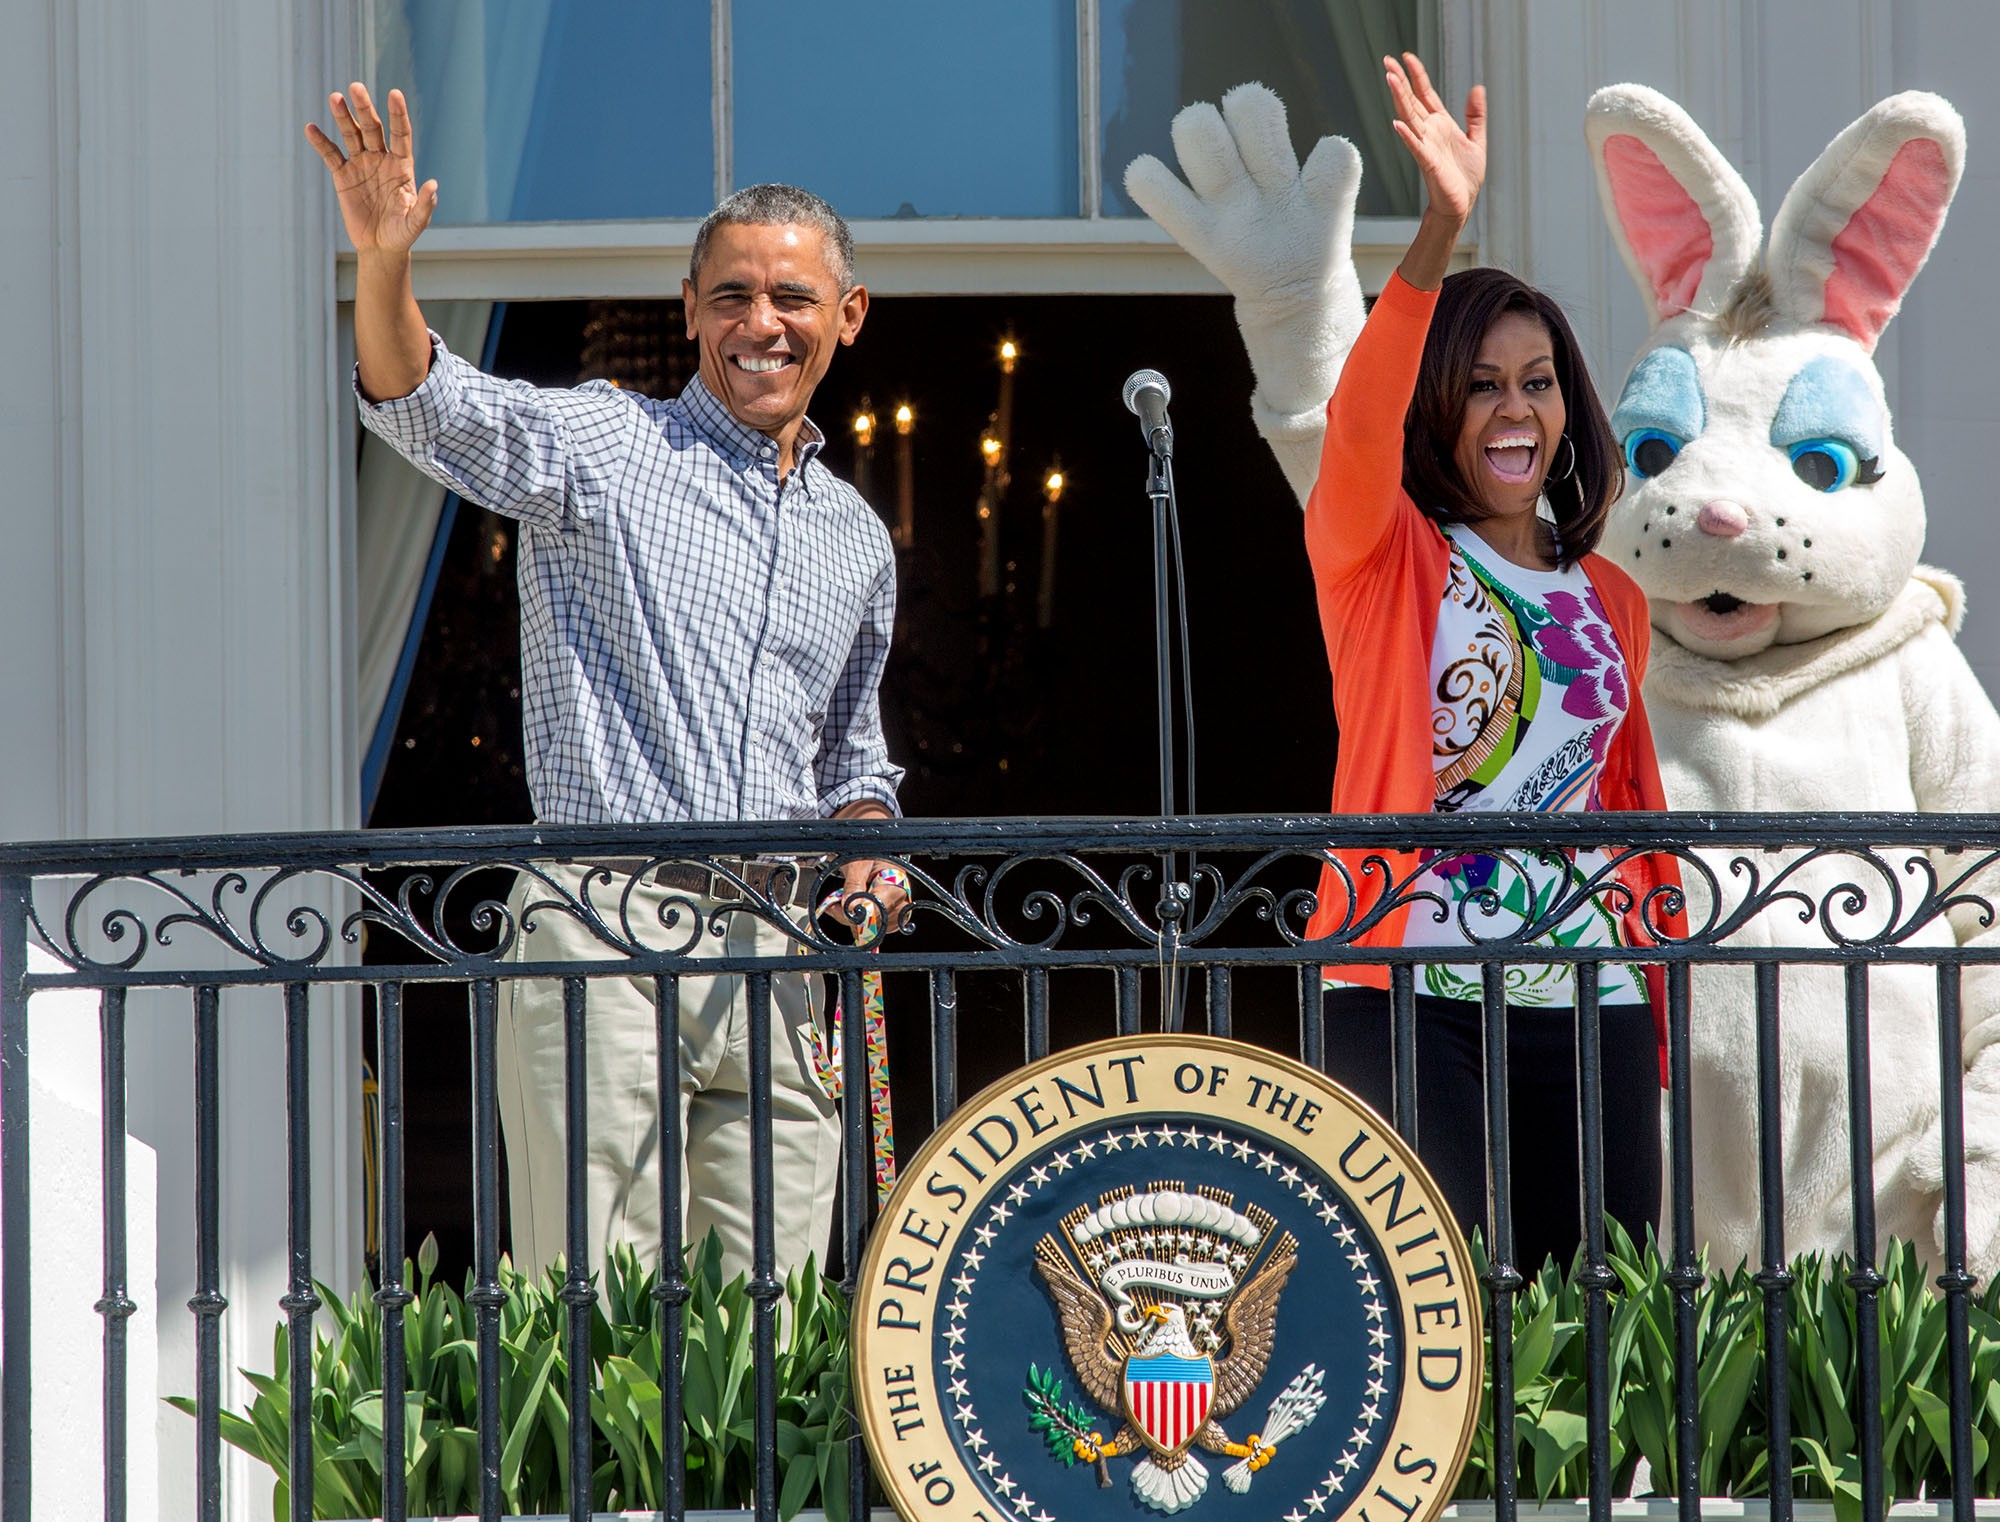 The President and First Lady, with the Easter Bunny, wave from the Blue Room Balcony. (Official White House Photo by David Lienemann)